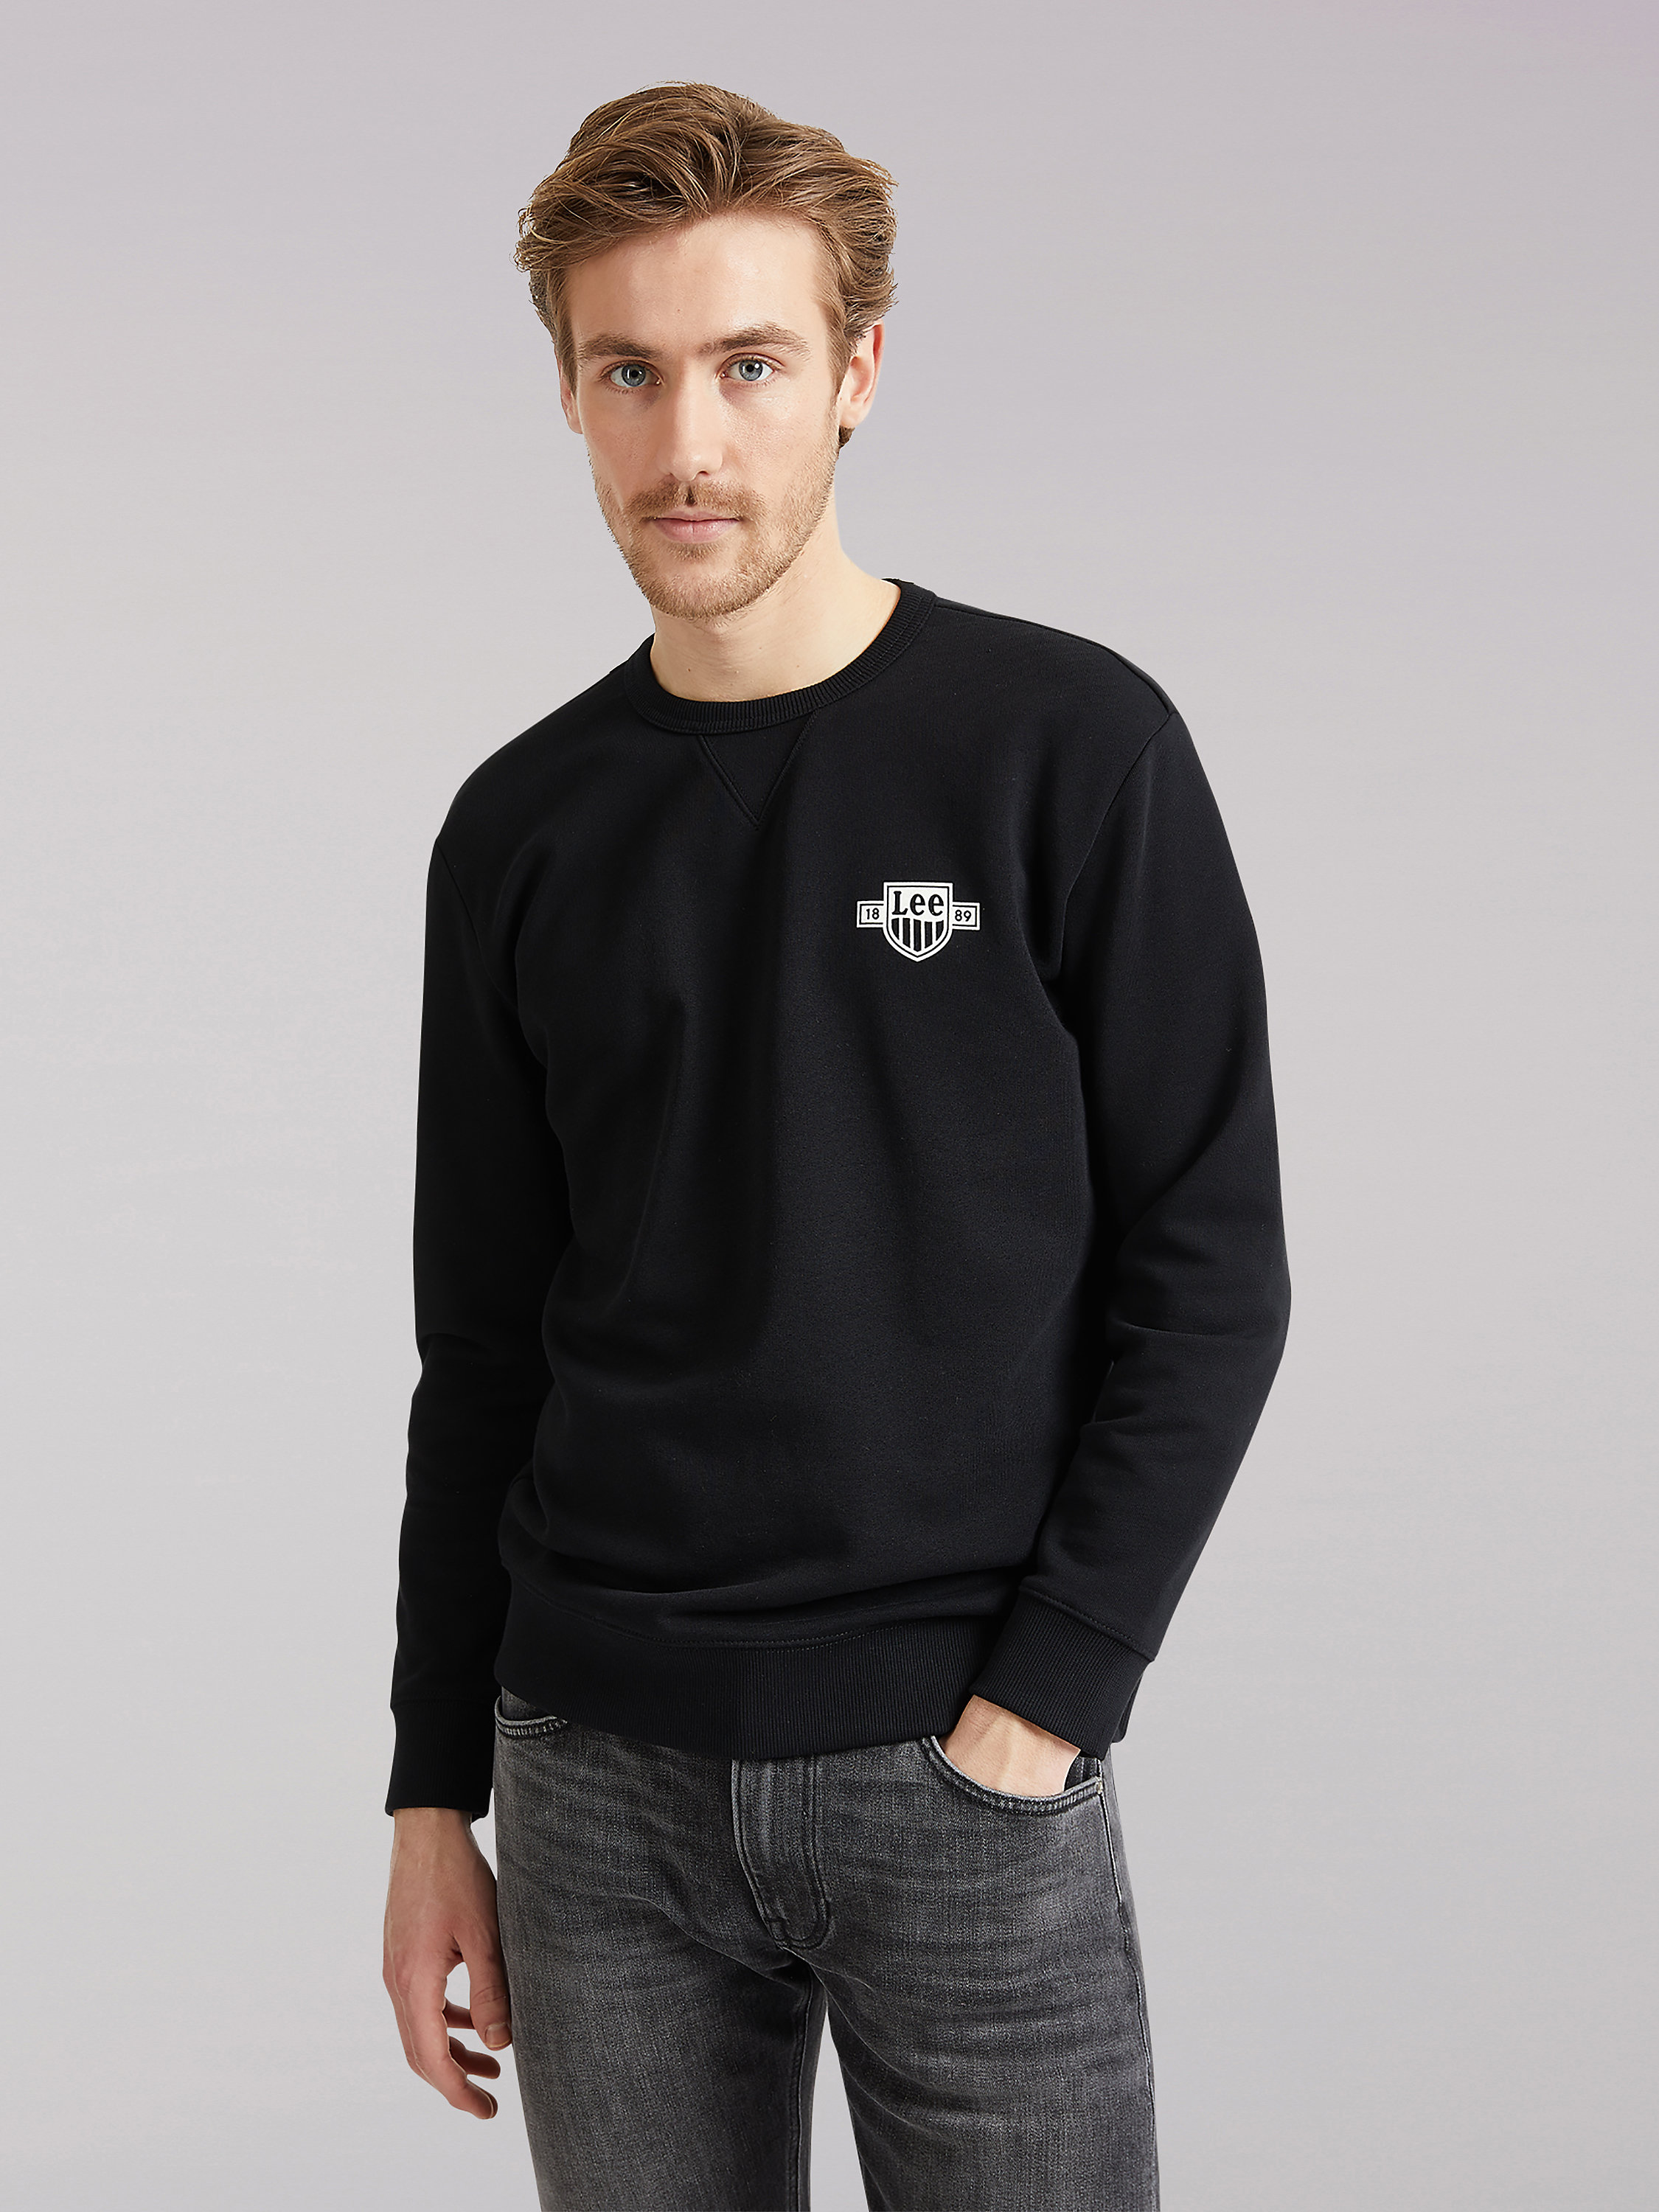 LEE EUROPEAN COLLECTION LOGO SWEATSHIRT